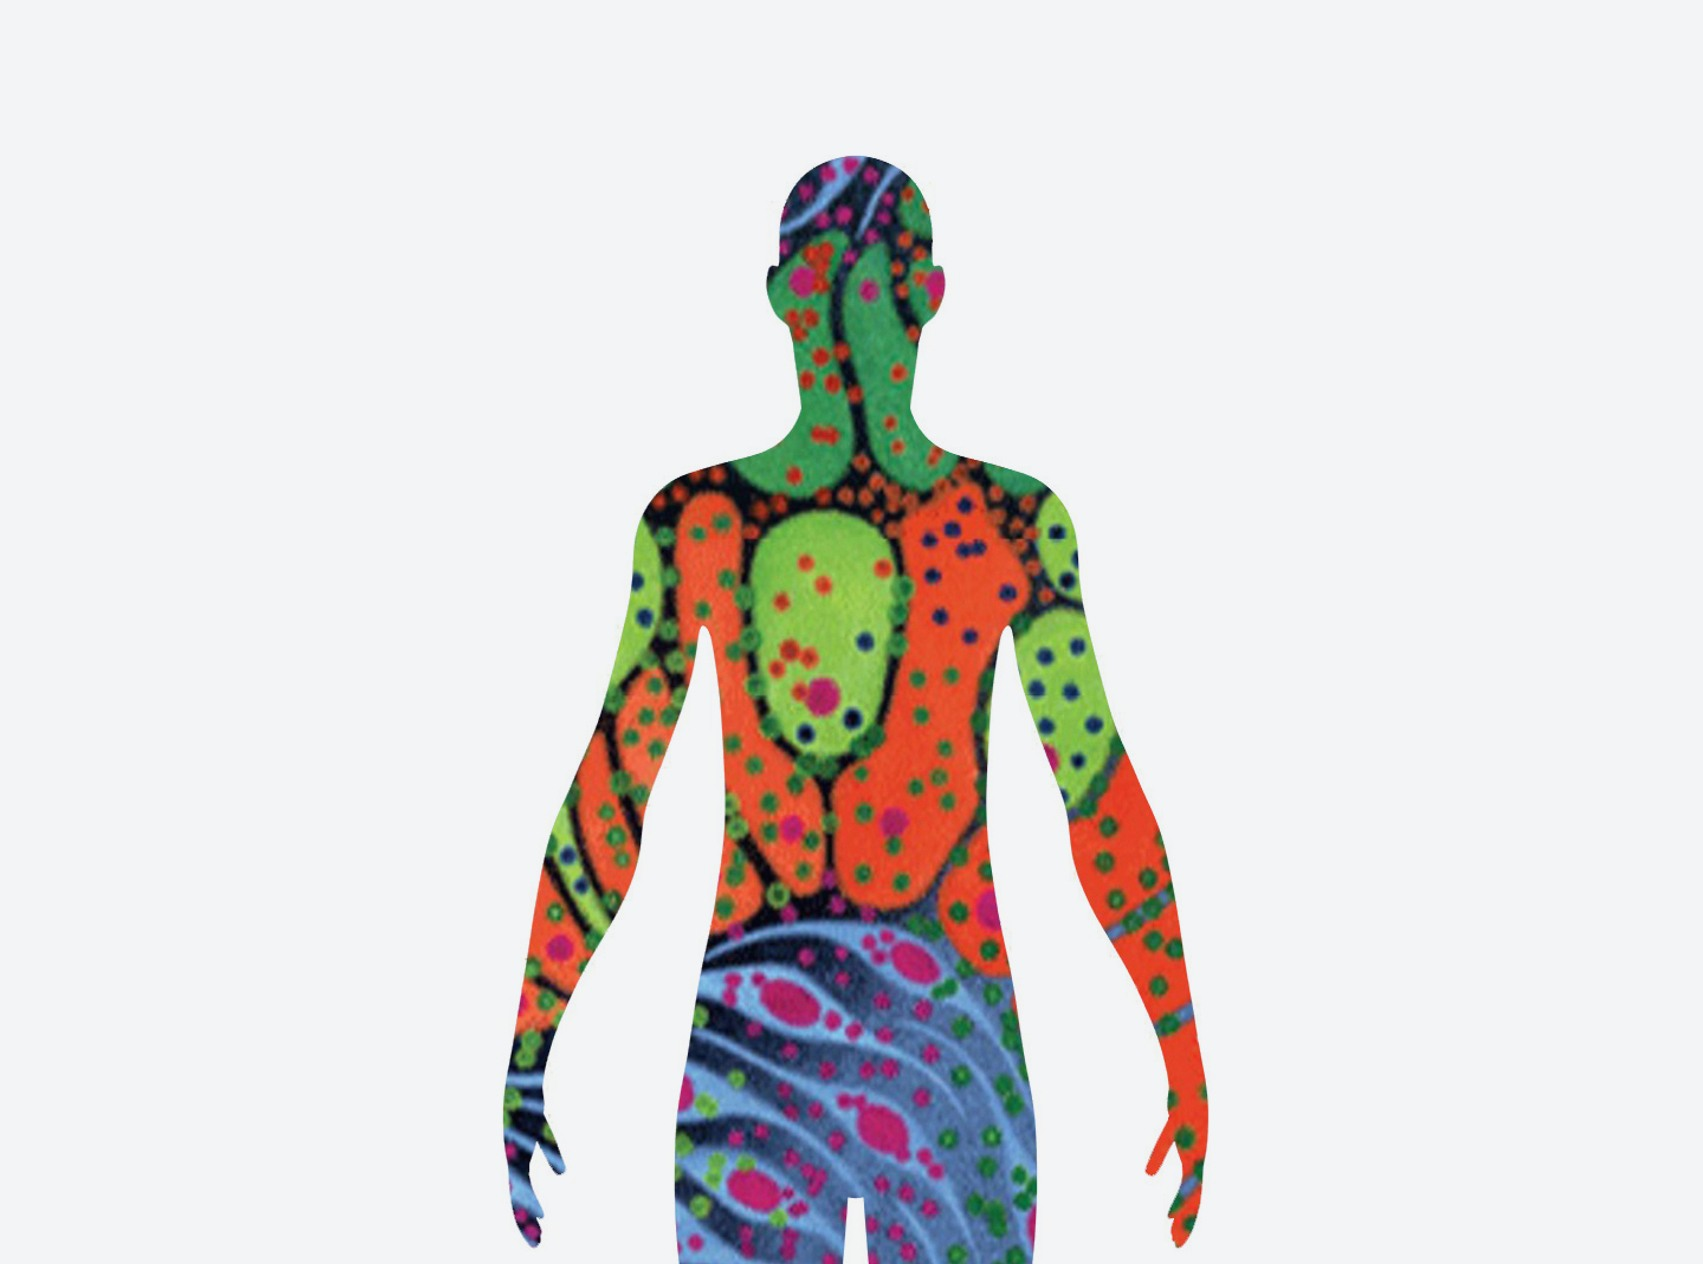 1703x1264 Nih To Build A Detailed Map Of Cells Within The Human Body